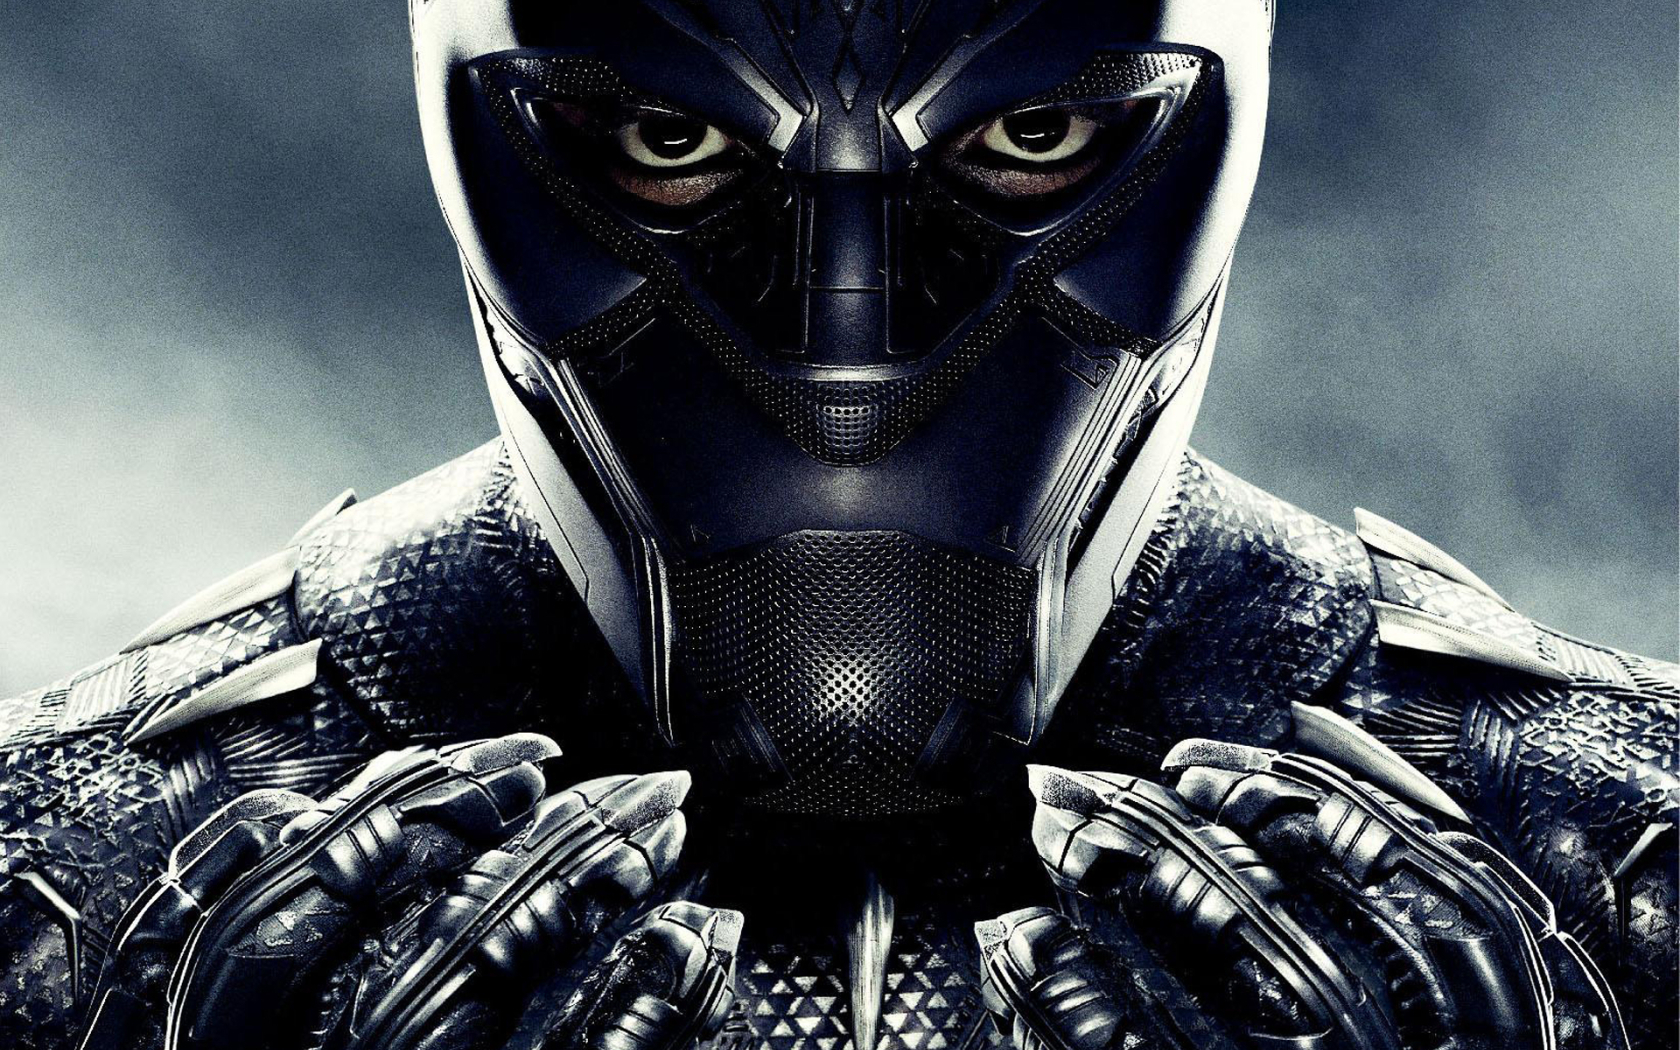 Black Panther 2018 Movie Still Full Hd Wallpaper: Download Black Panther International Poster 2018 1080x1920